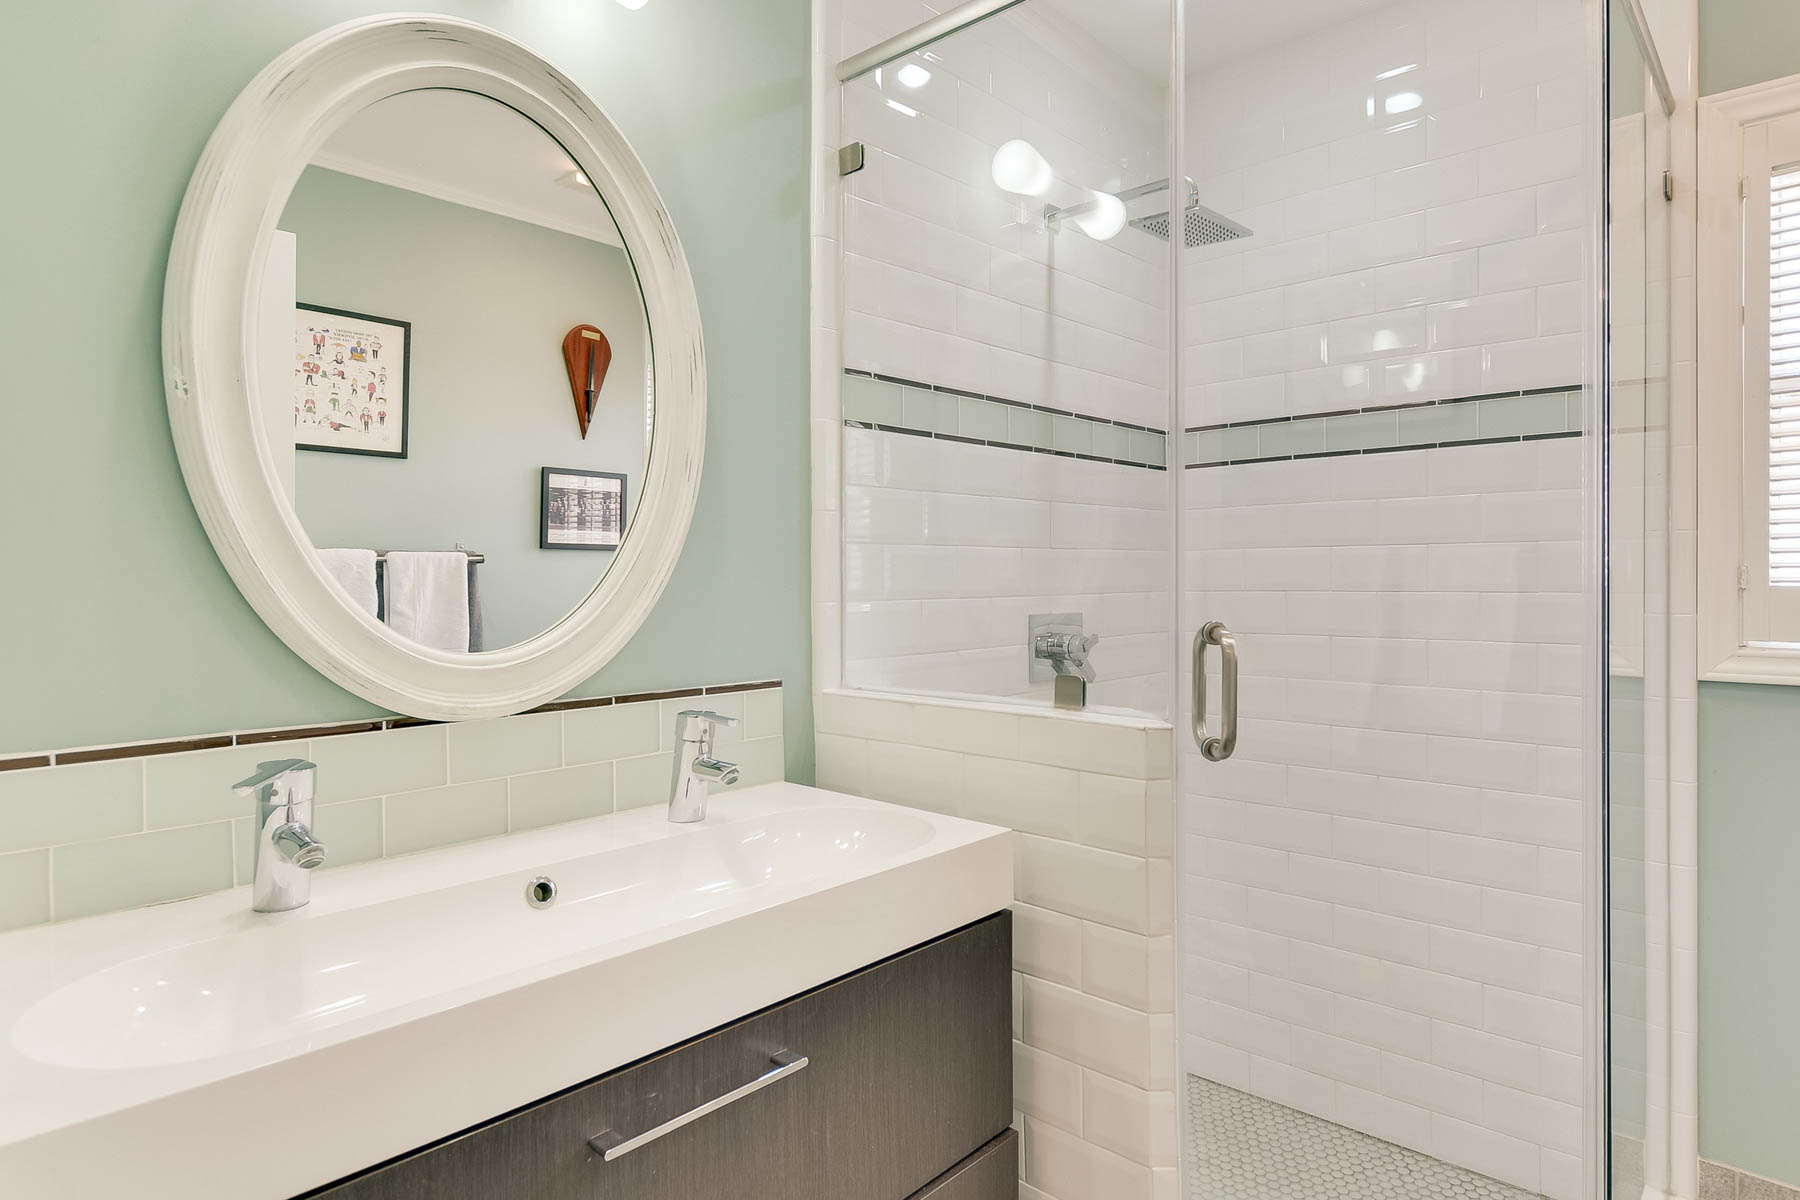 Additional photo for property listing at Spacious Home on a Quiet Street in AHISD 231 Hillview Dr San Antonio, Texas 78209 Estados Unidos